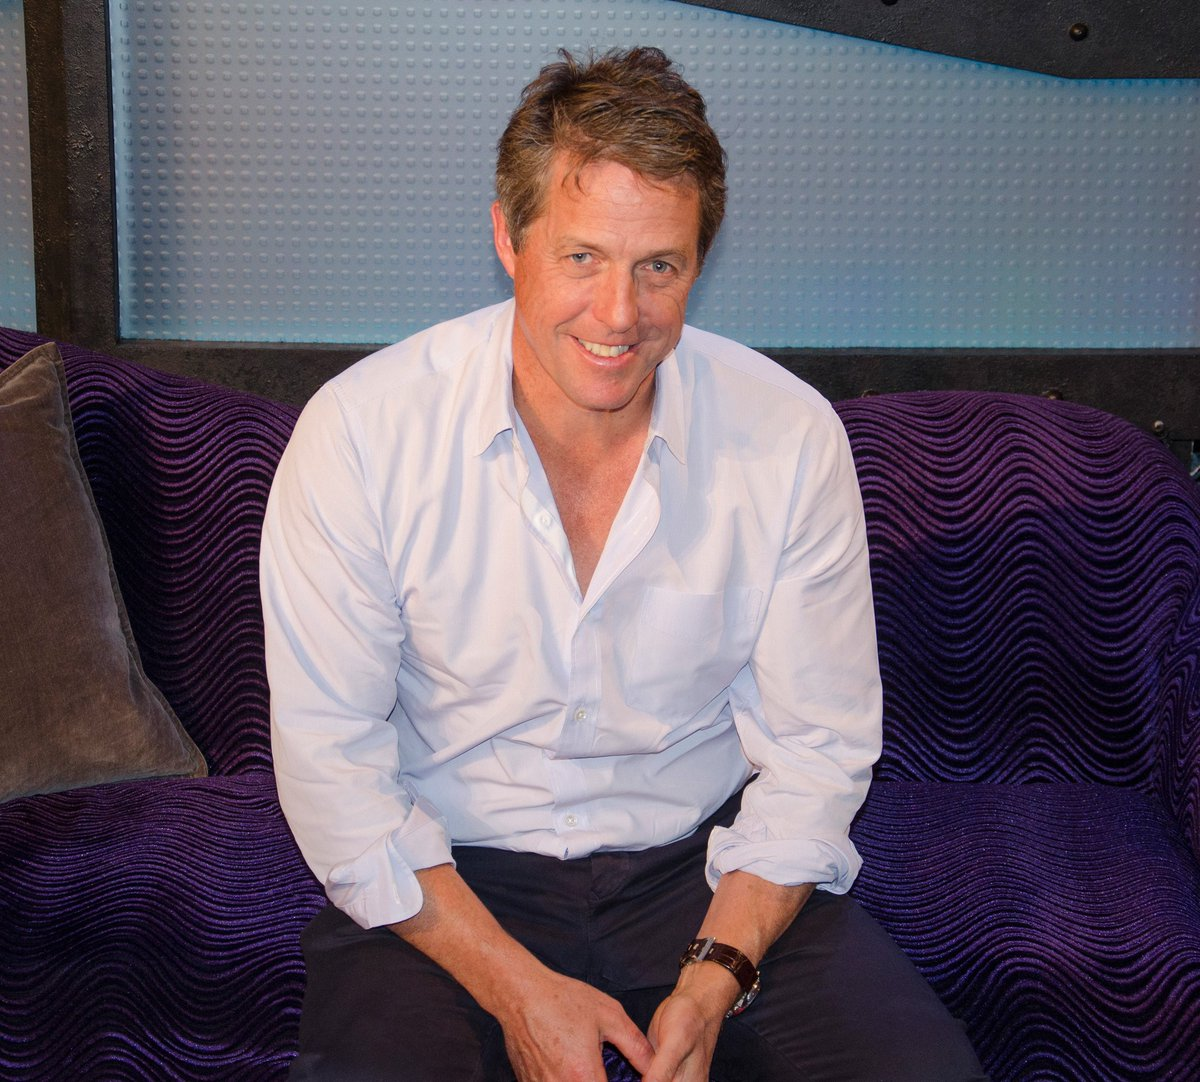 hackedoffhugh came in and said it all to howard stern! @ffjmovie ...